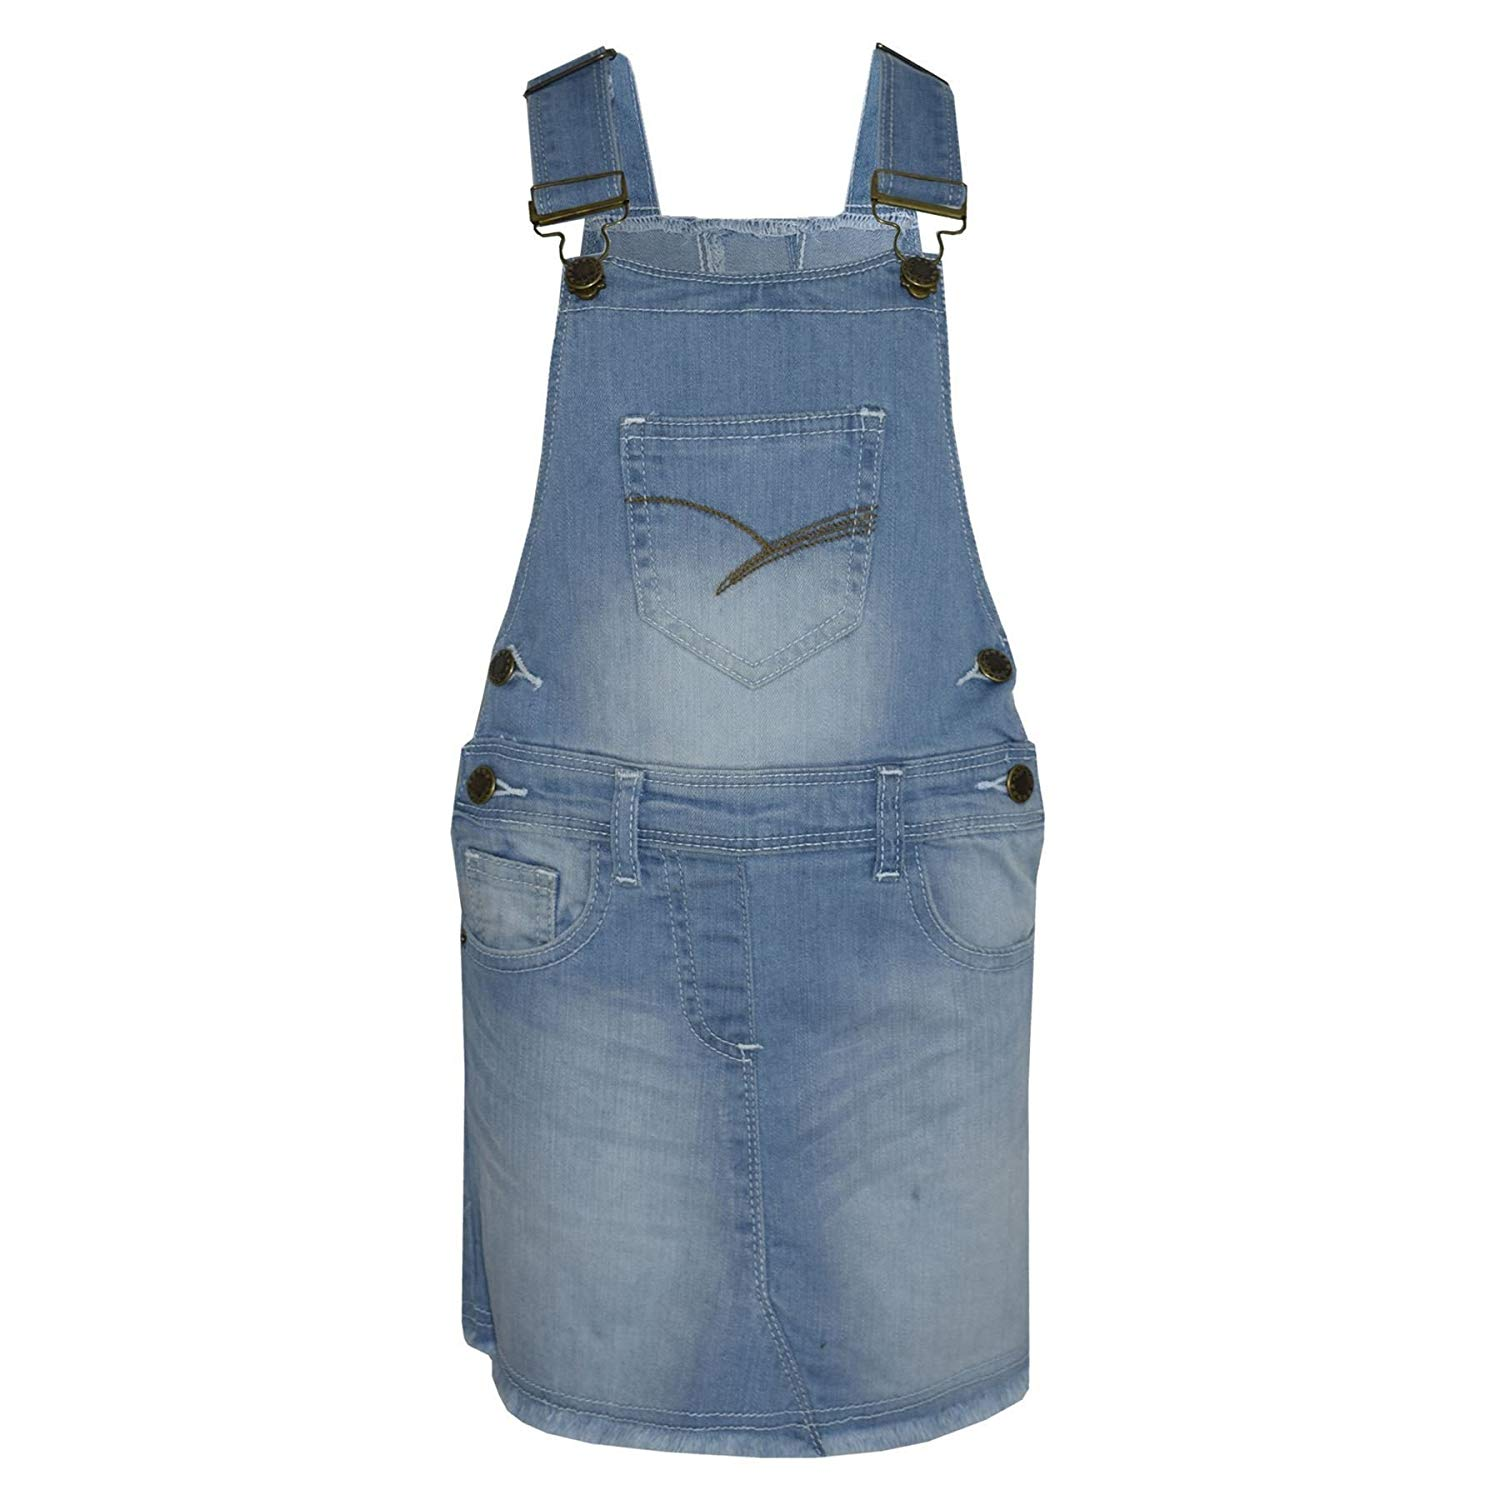 6b360a582732 Get Quotations · Kids Girls Denim Stretch Dungaree Skirt Jumpsuit Playsuit  All In One 2-13 Years